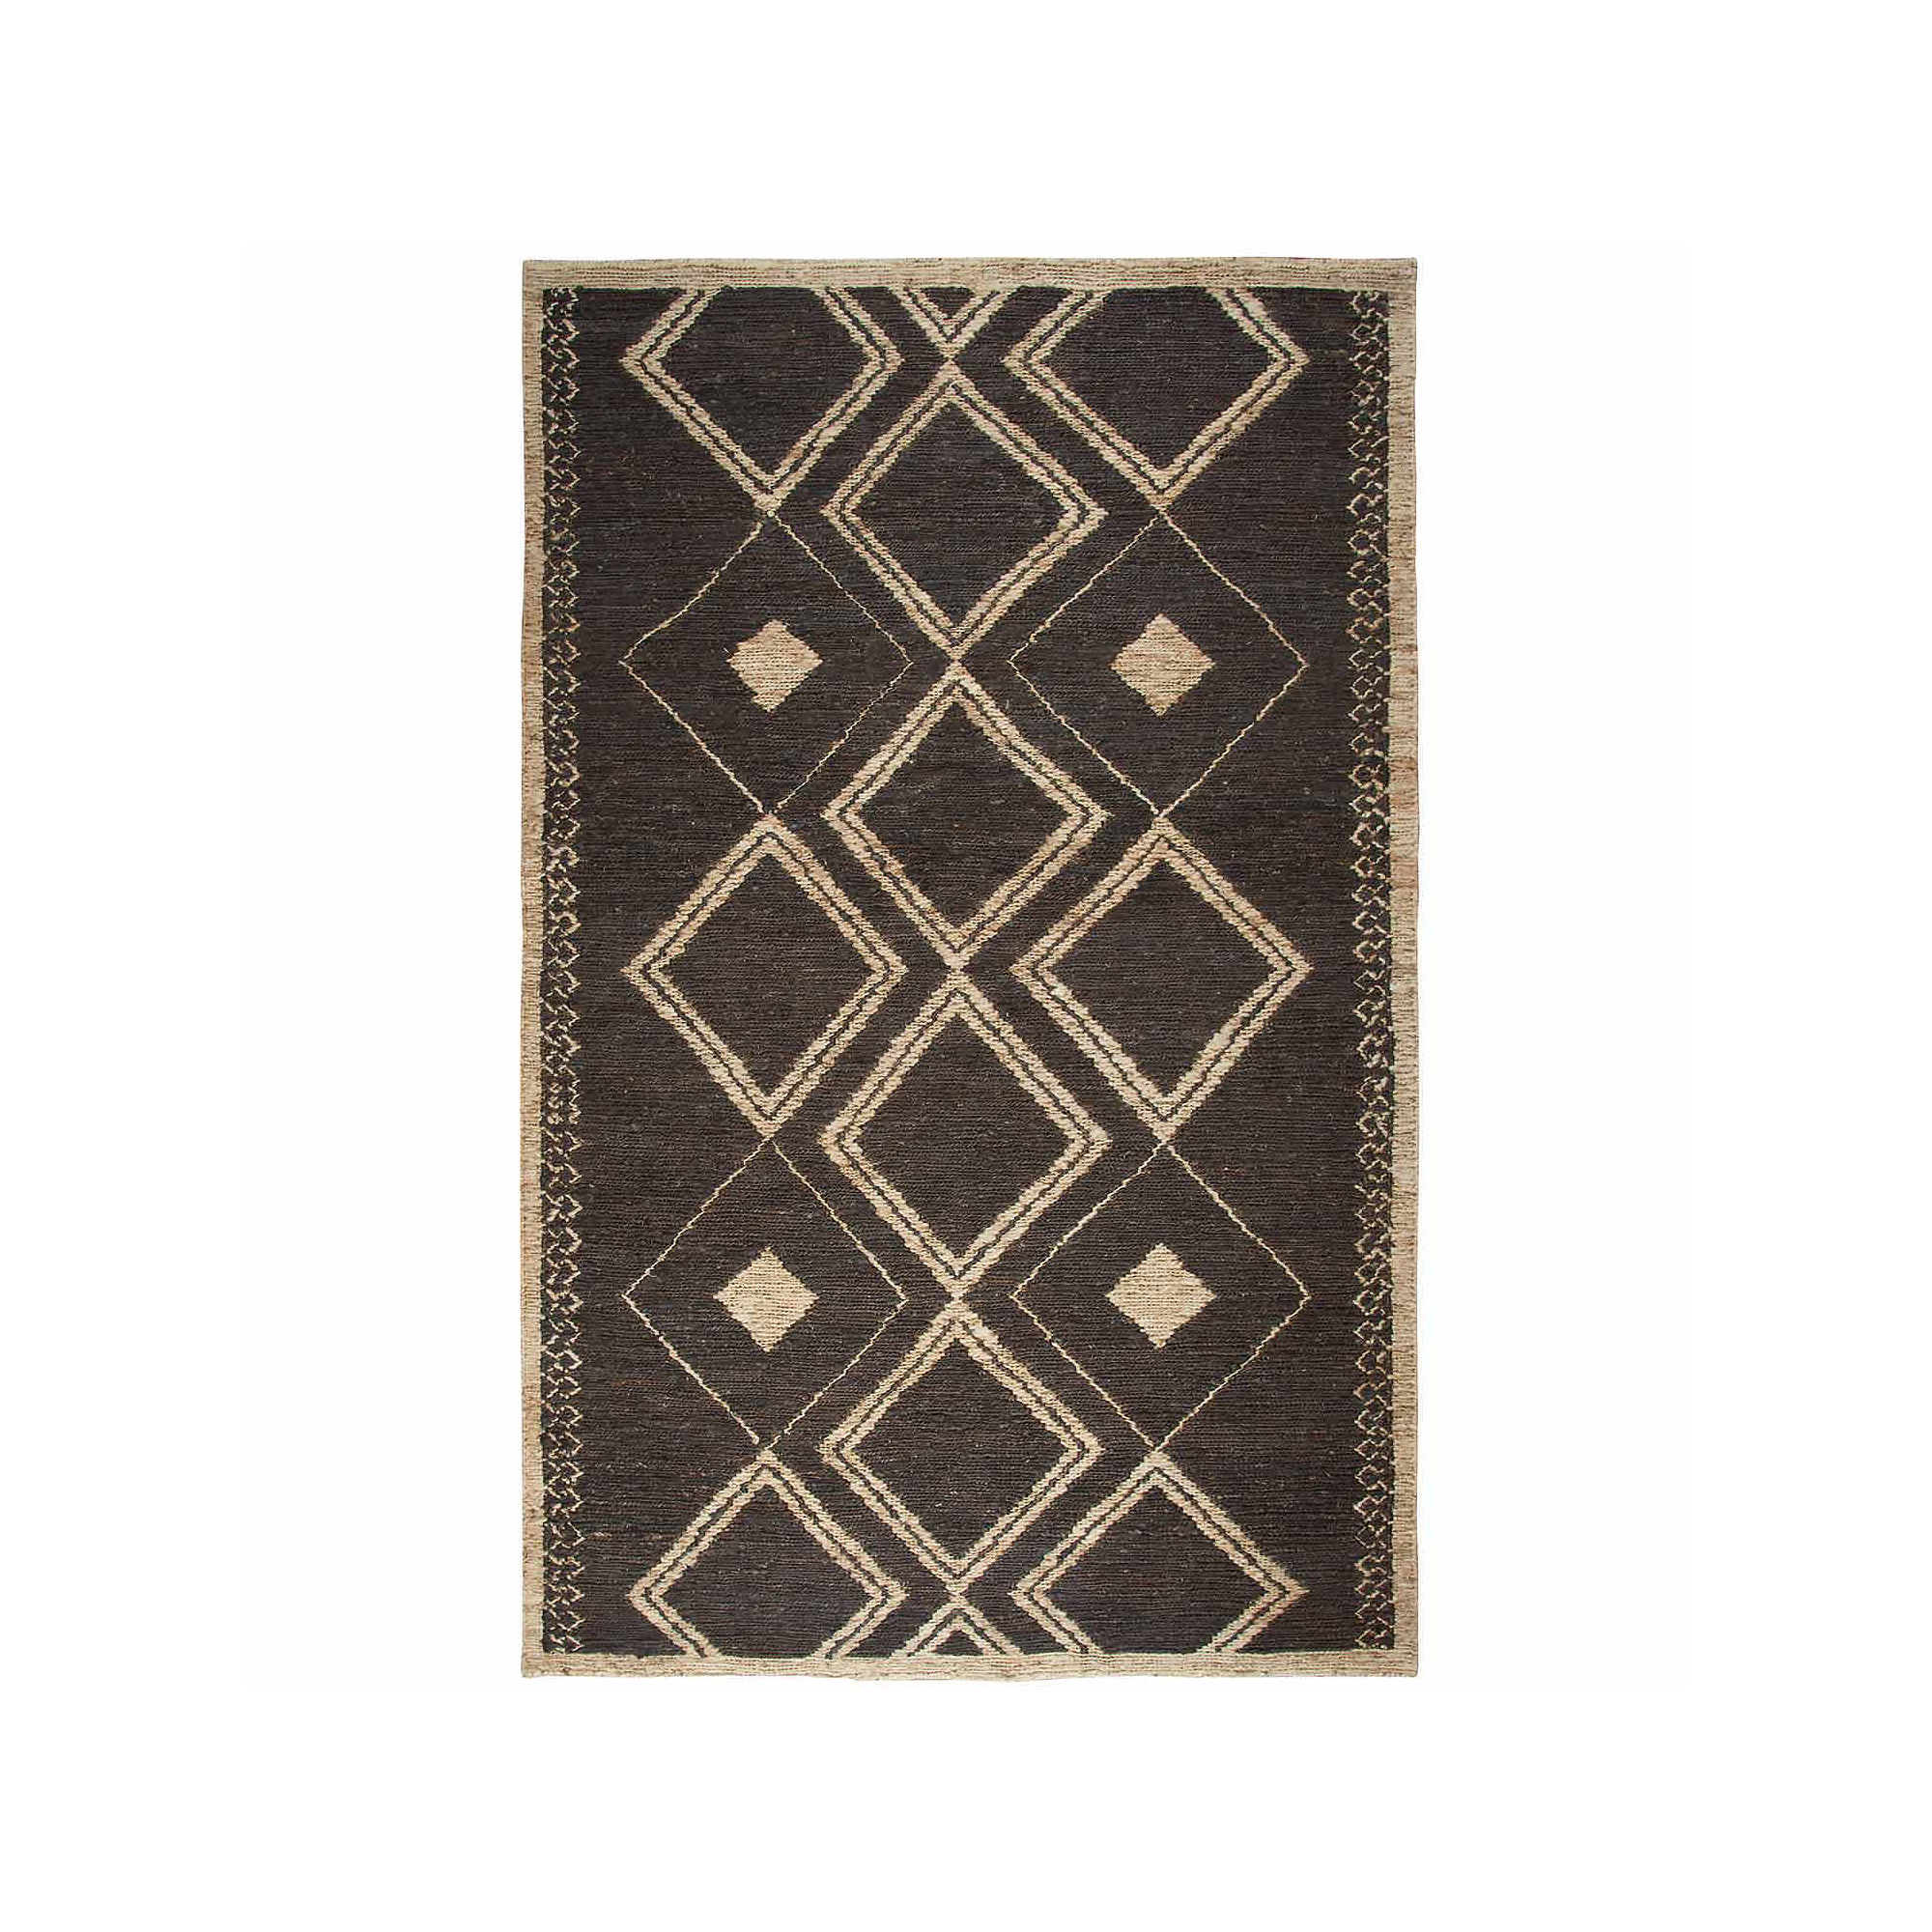 Rizzy Home Whittier Collection Blakely Geometric Rectangular Rugs